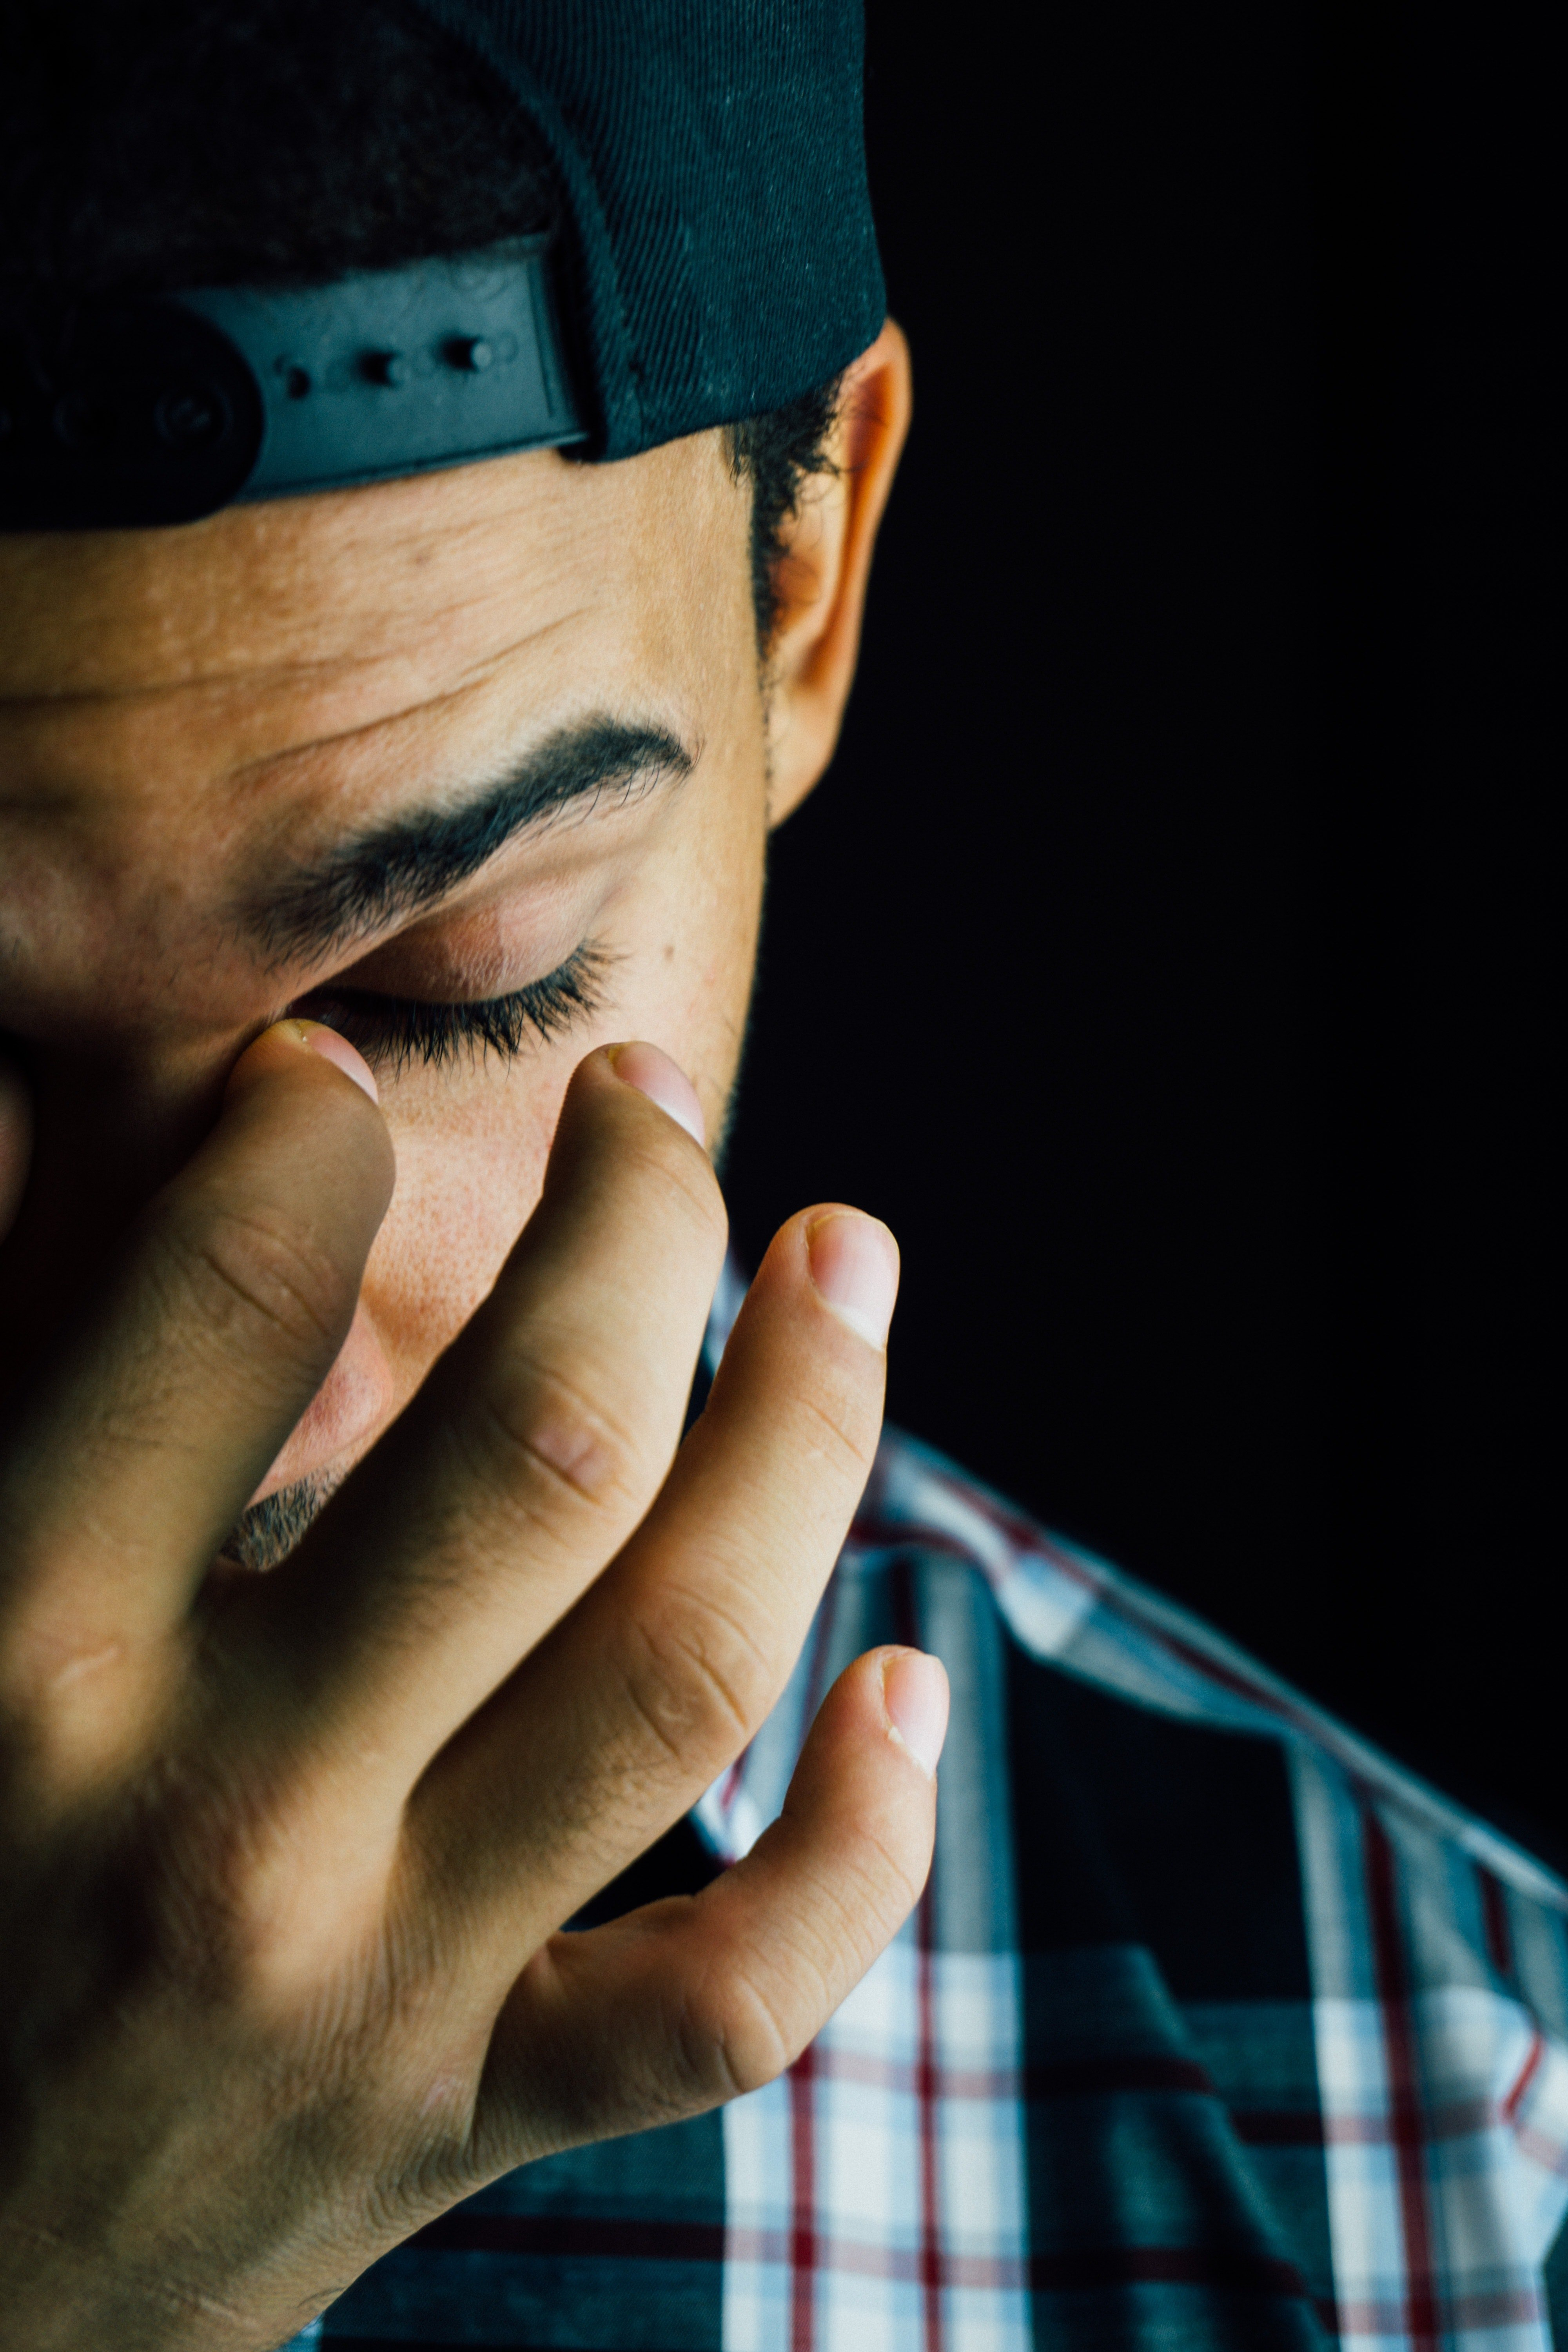 A frustrated man covering his face. | Source: Pexels